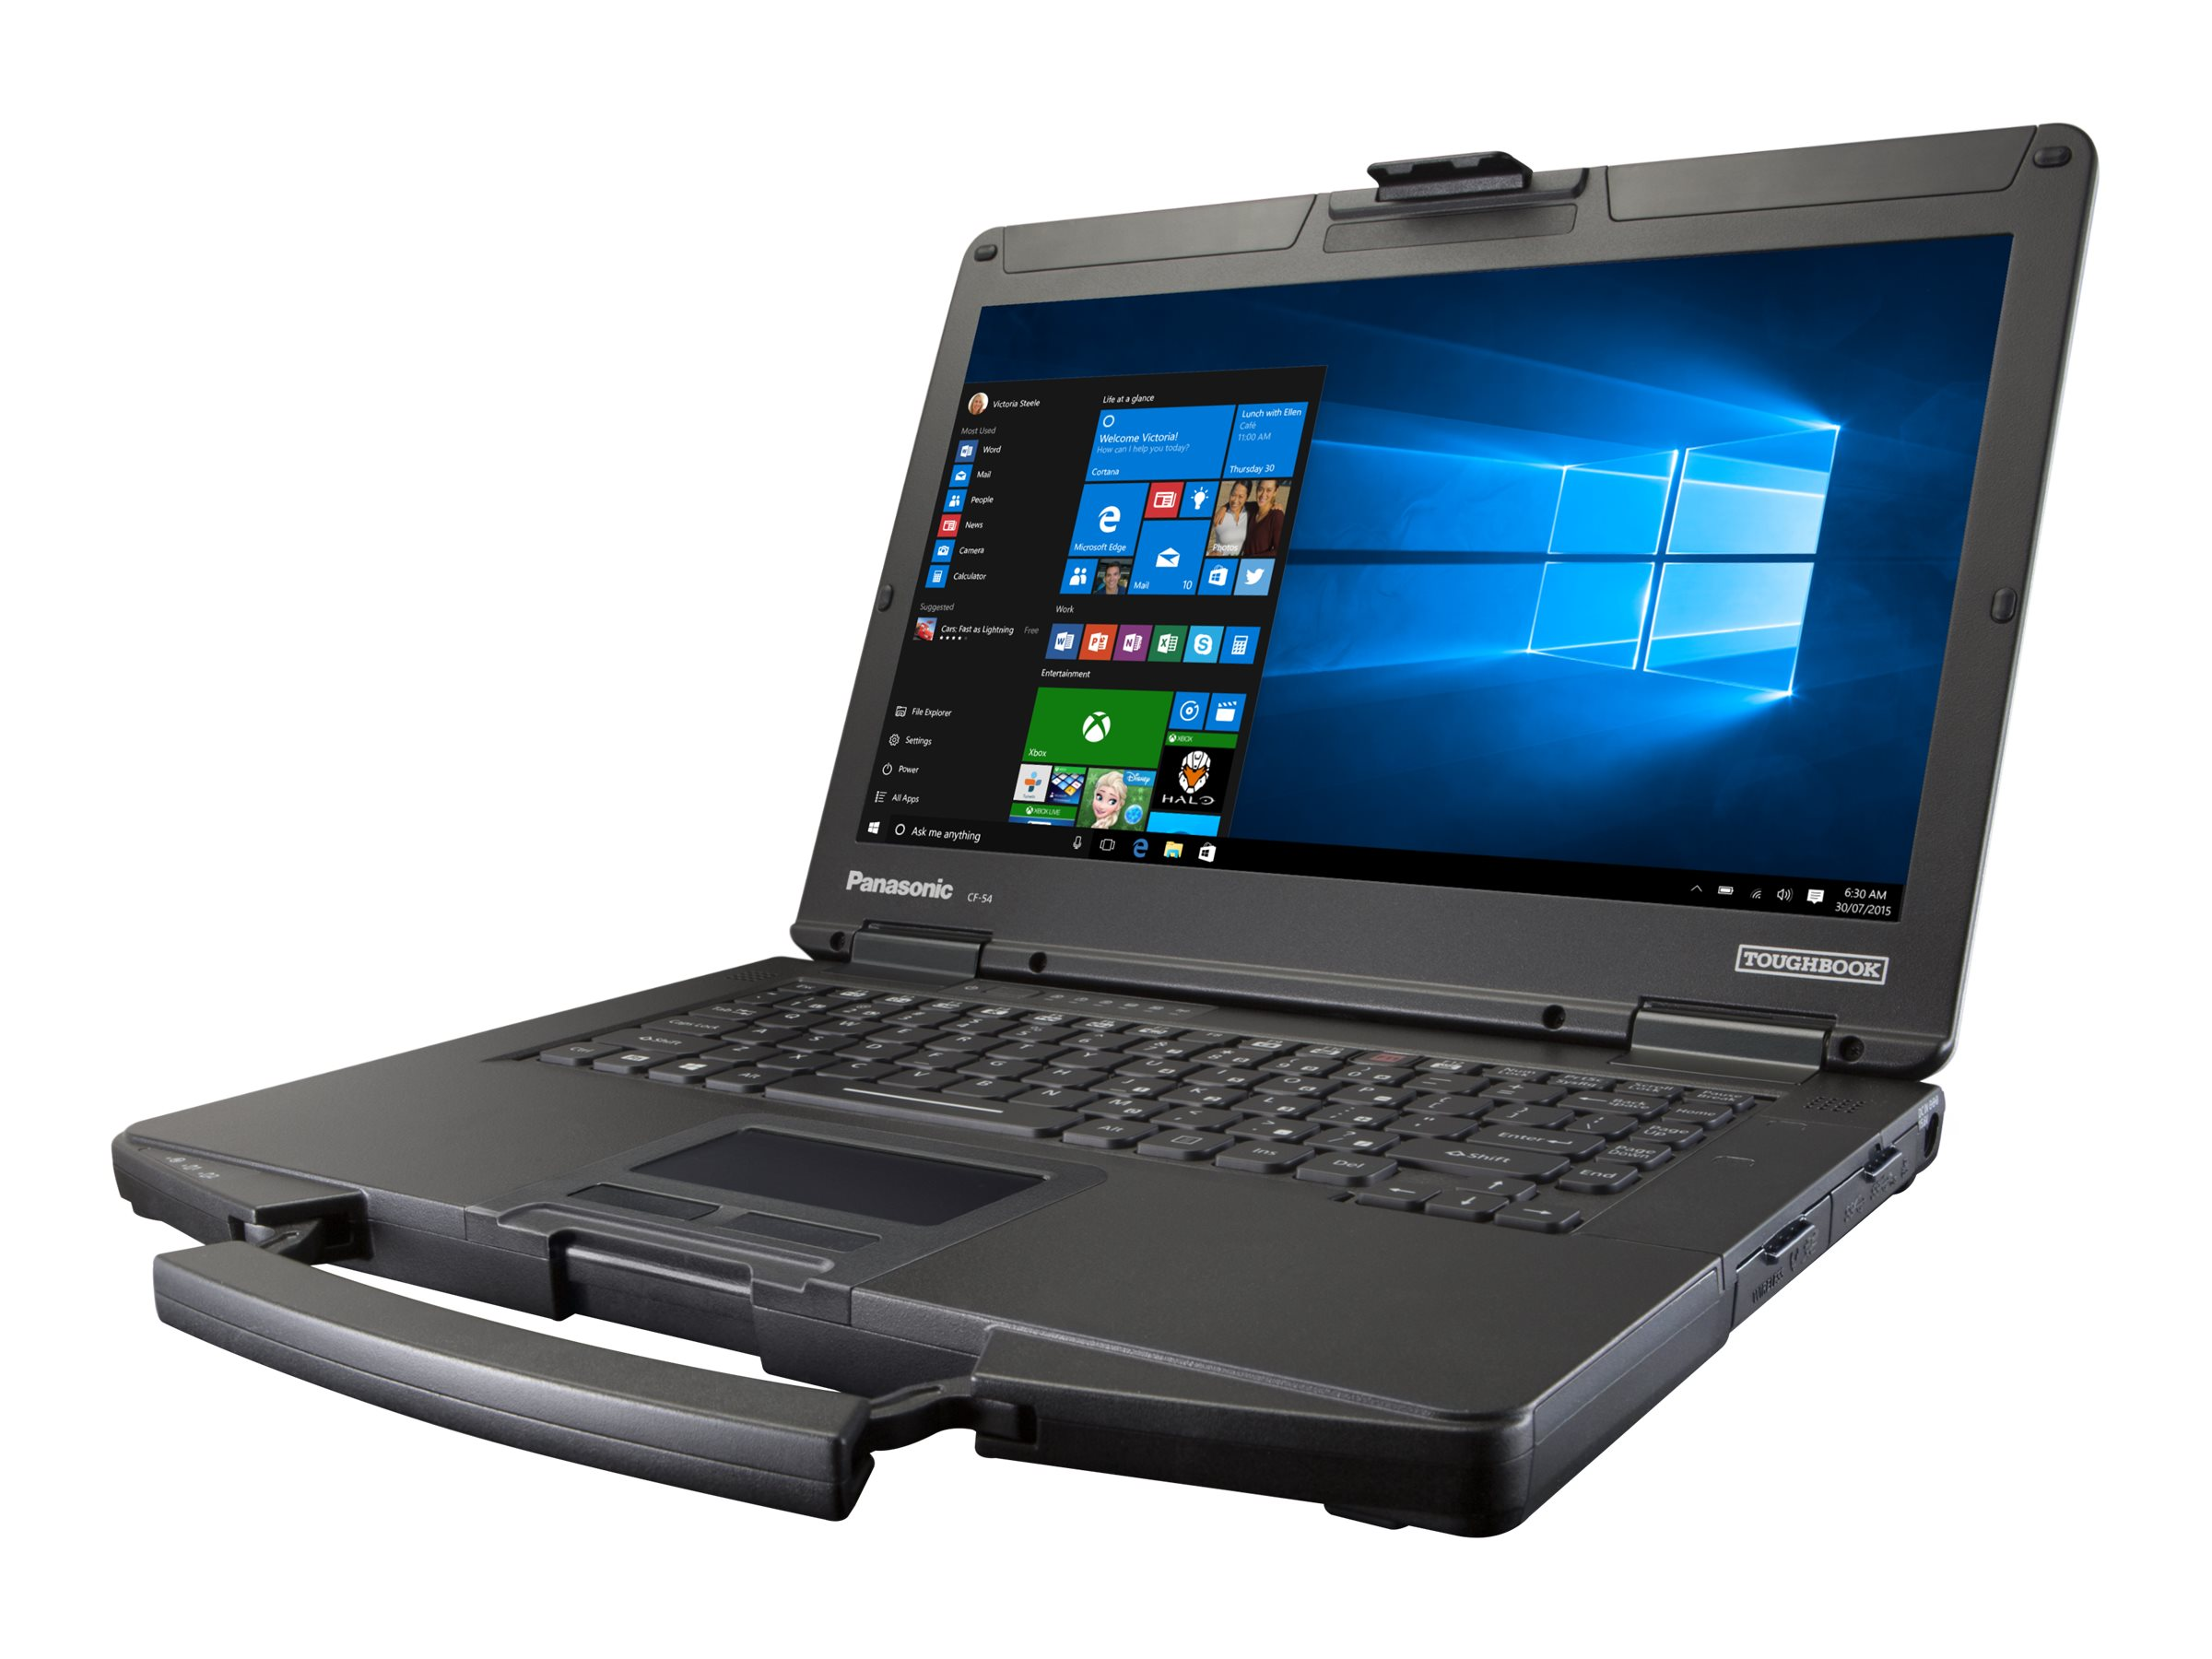 Panasonic Toughbook 54 Mid - Core i5 7300U / 2.6 GHz - Win 10 Pro - 4 GB RAM - 256 GB SSD - DVD SuperMulti